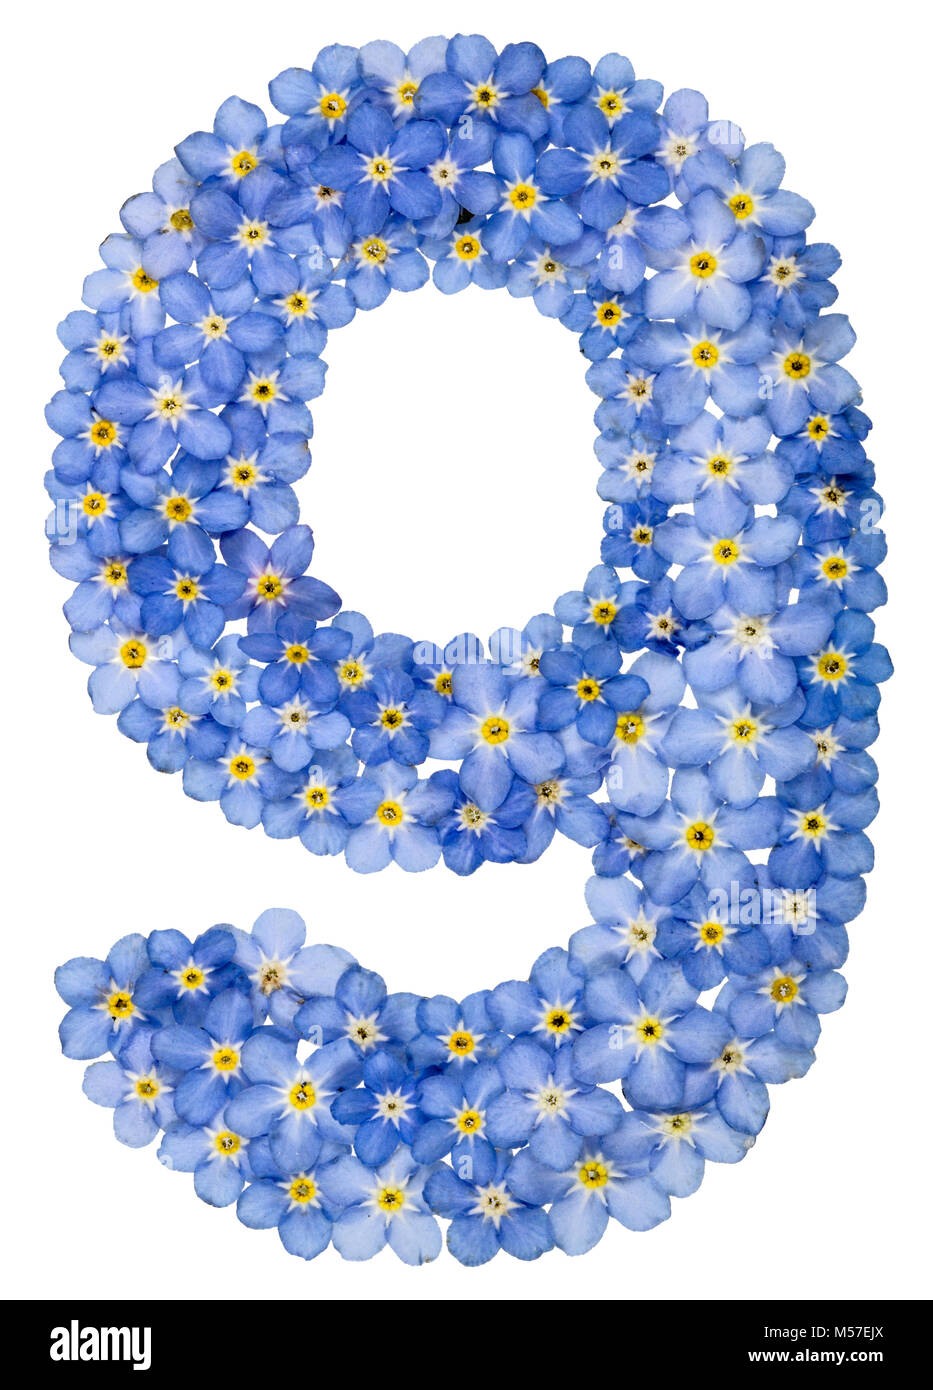 Arabic numeral 9, nine, from blue forget-me-not flowers - Stock Image